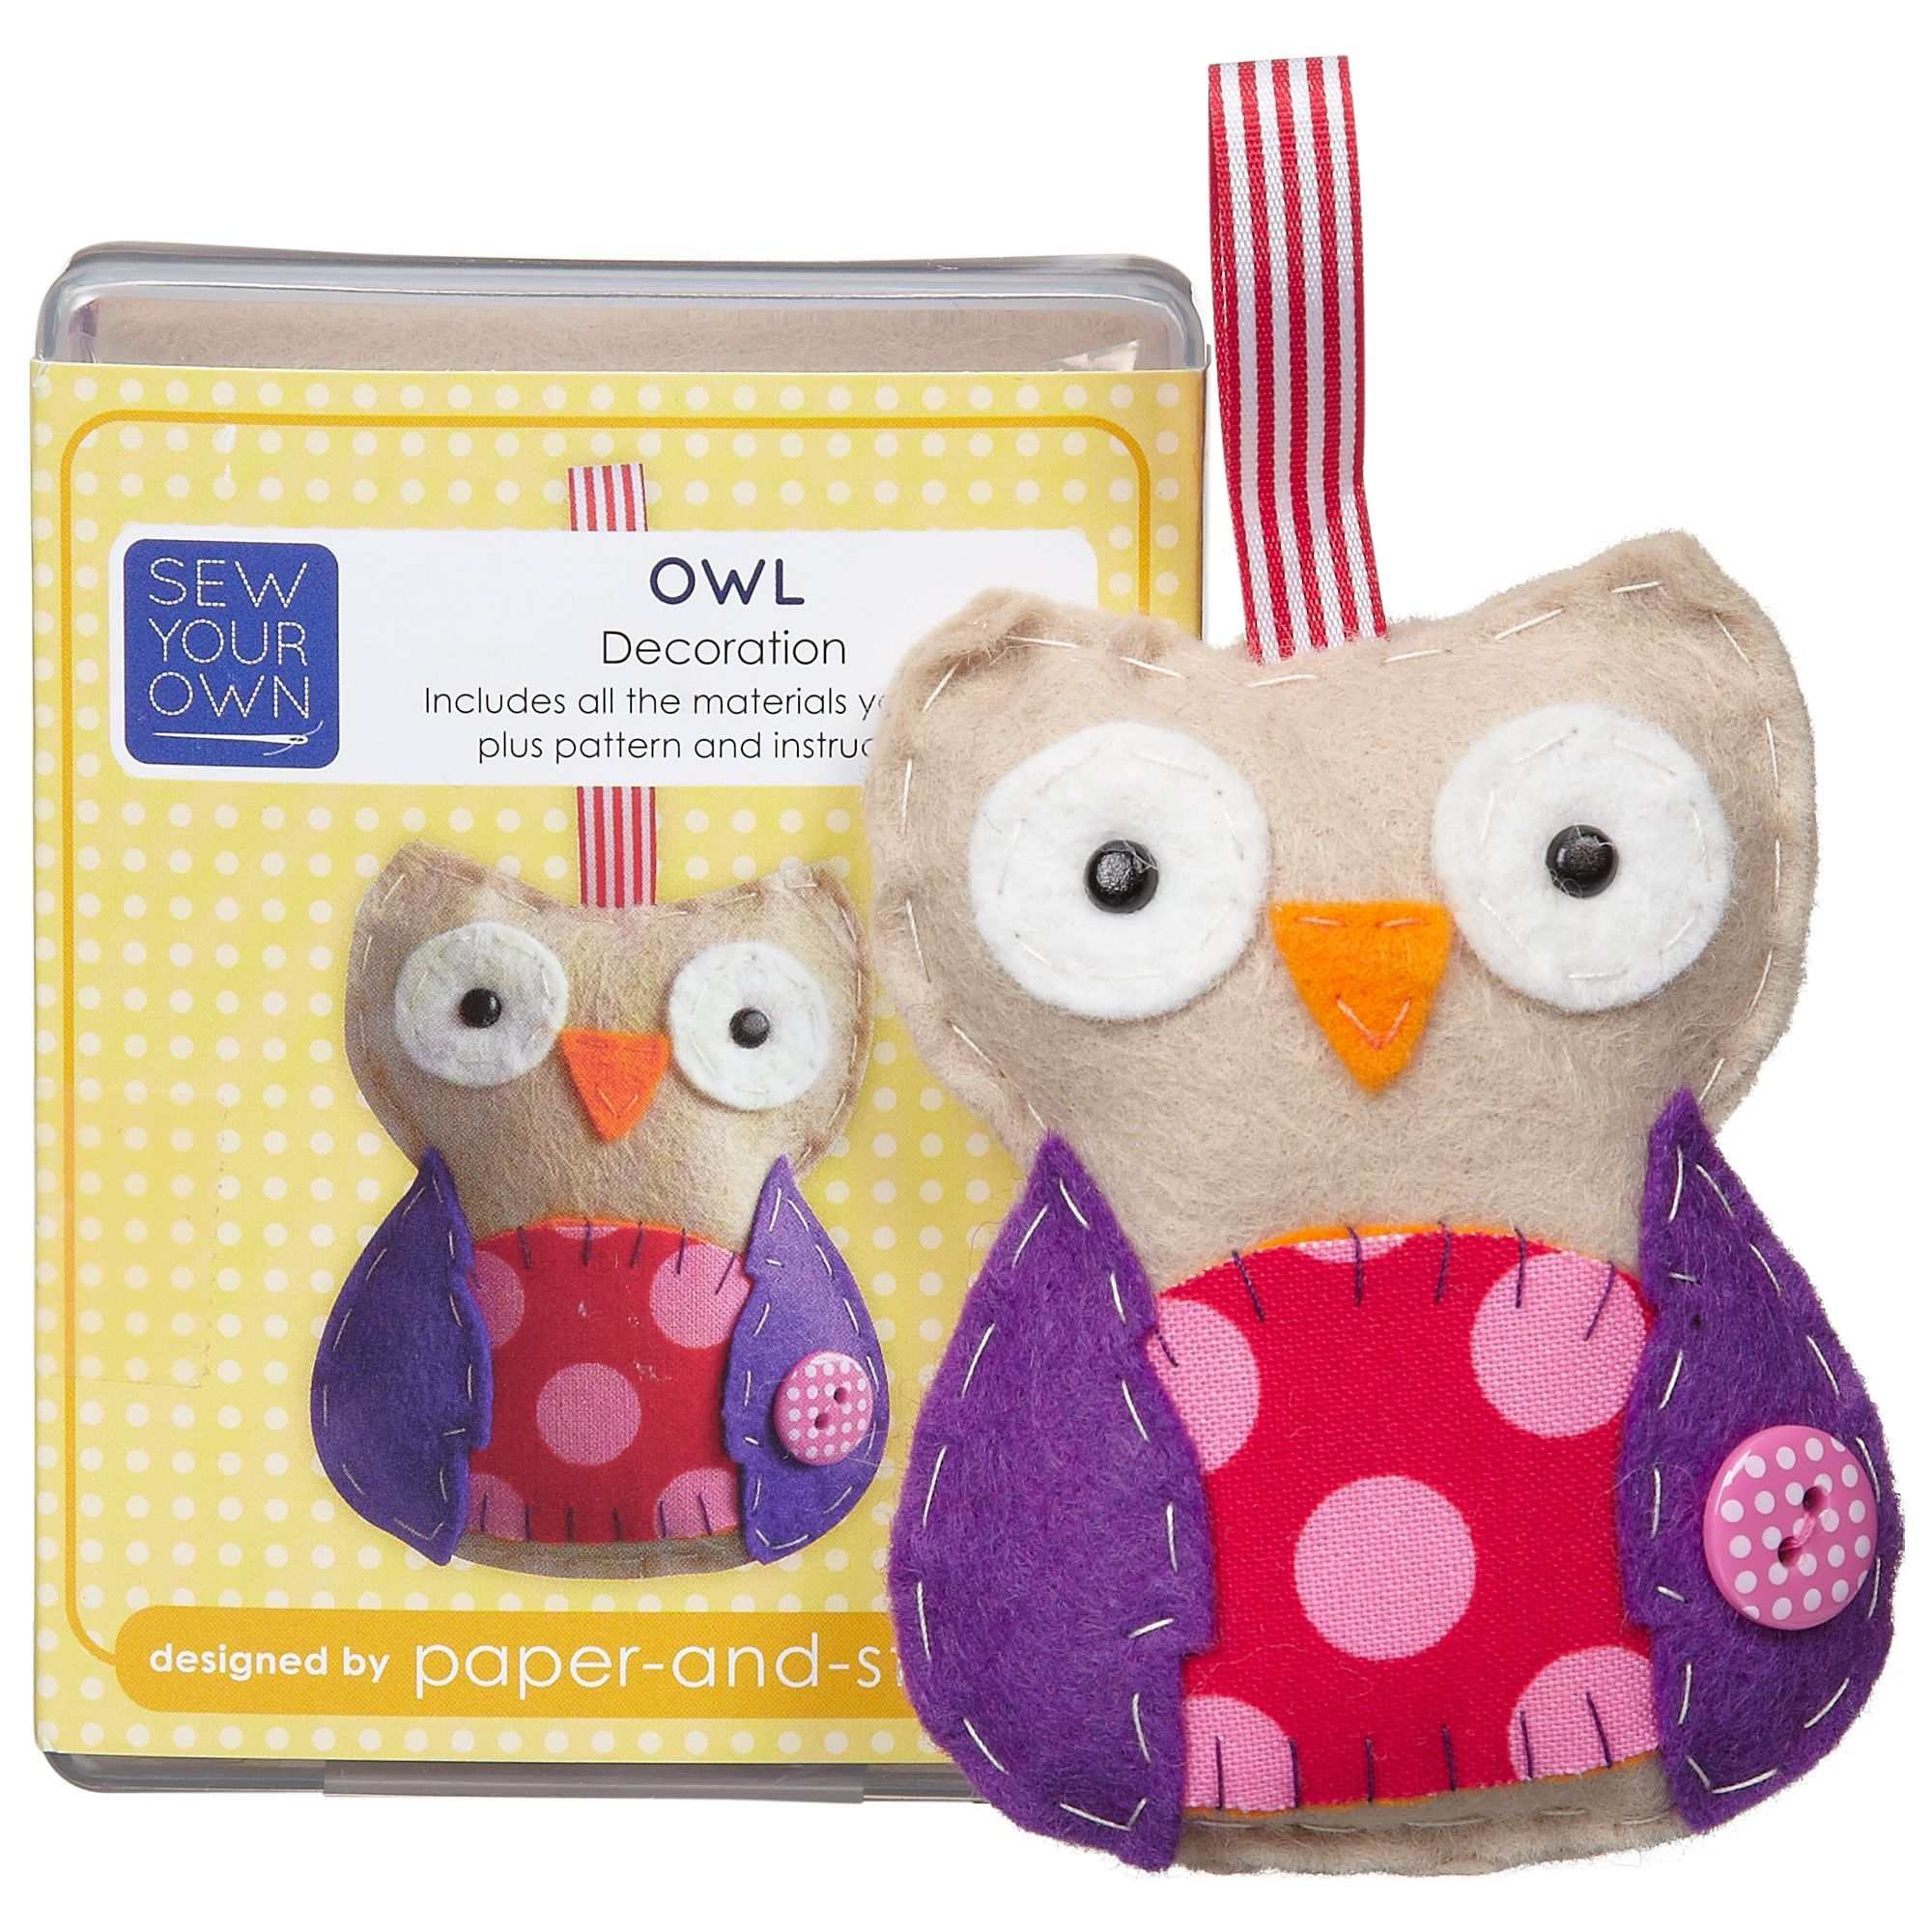 Paper and String Sew Your Own Mini Owl Kit